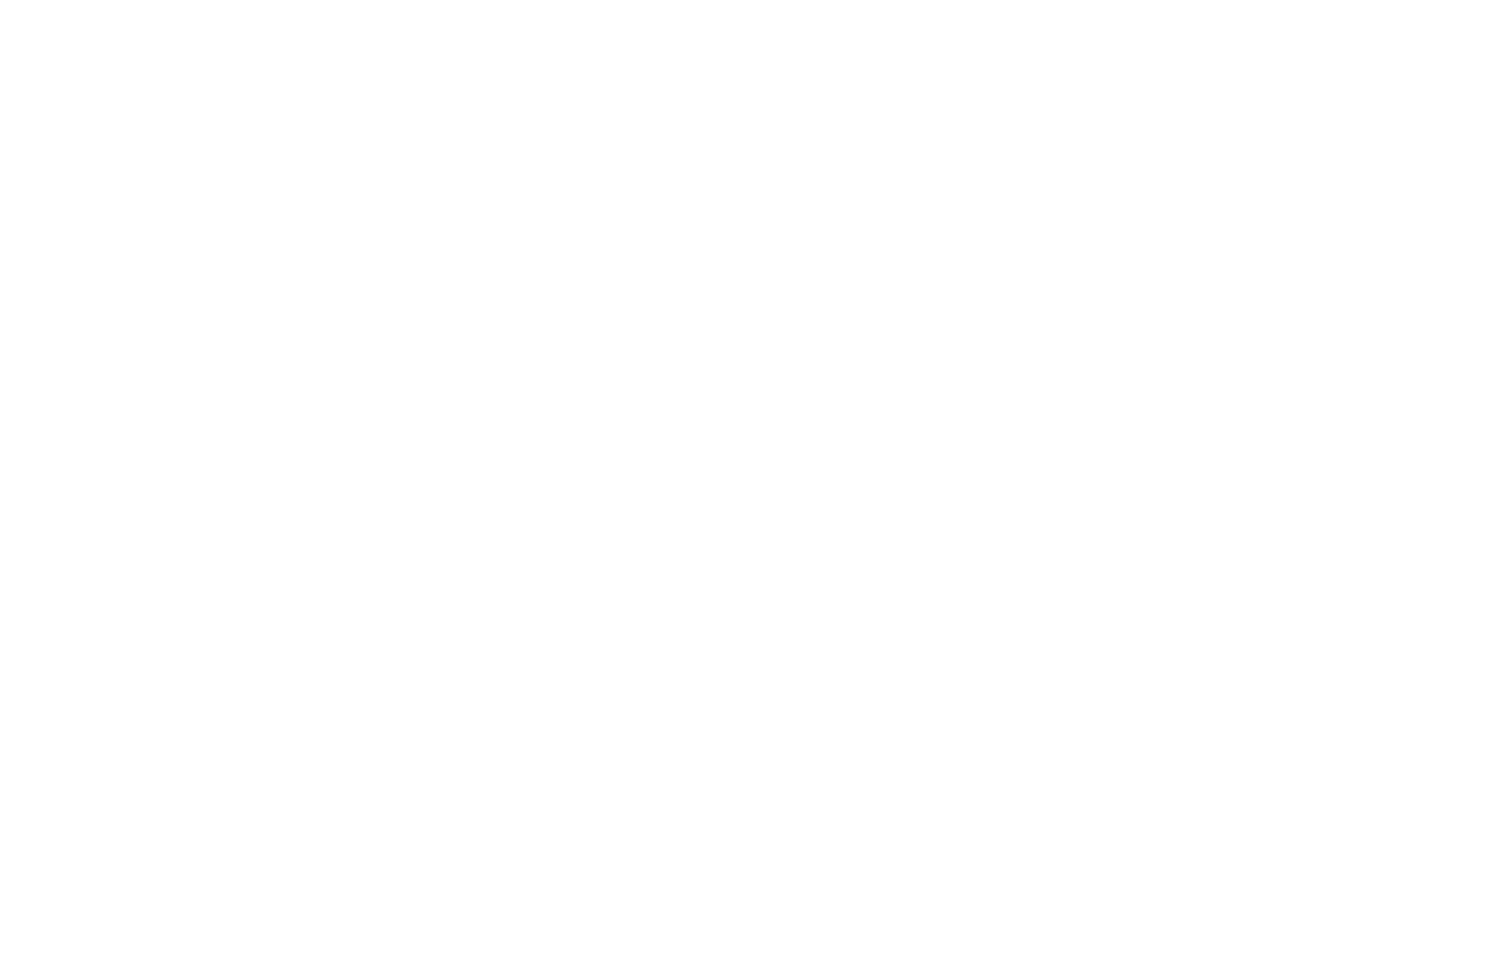 White Builders